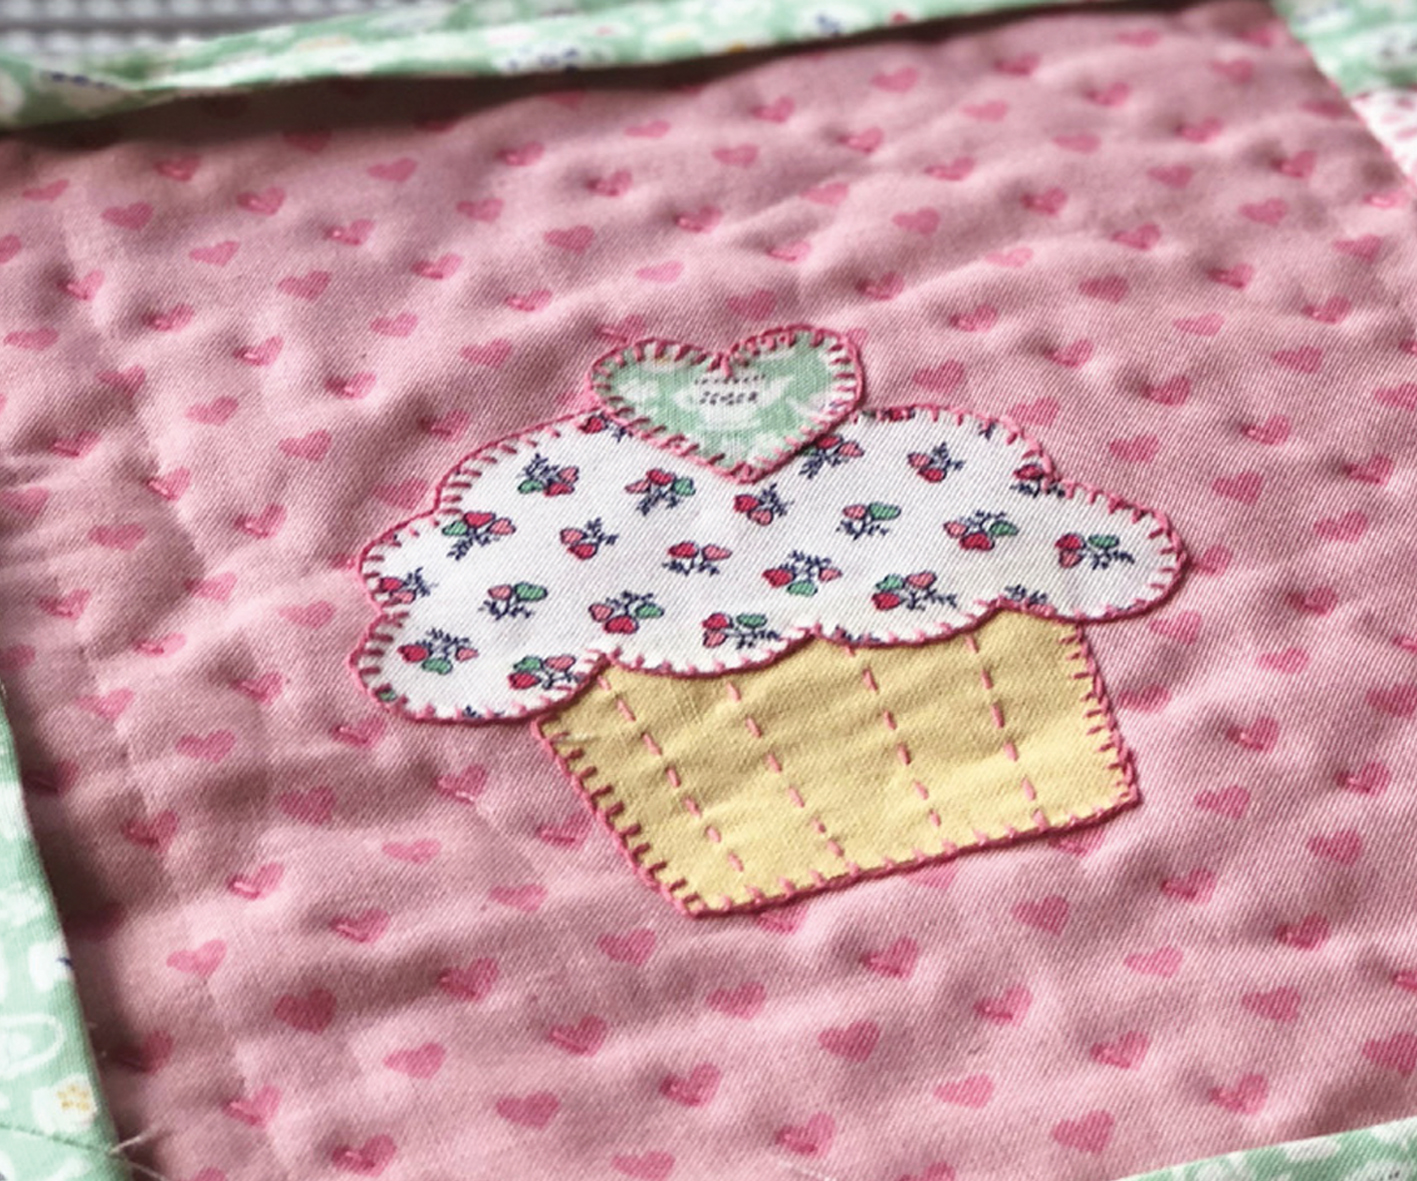 PATCHWORK-INTRO-BANNER - CUPCAKE-PLACEMAT-POST-IMAGE